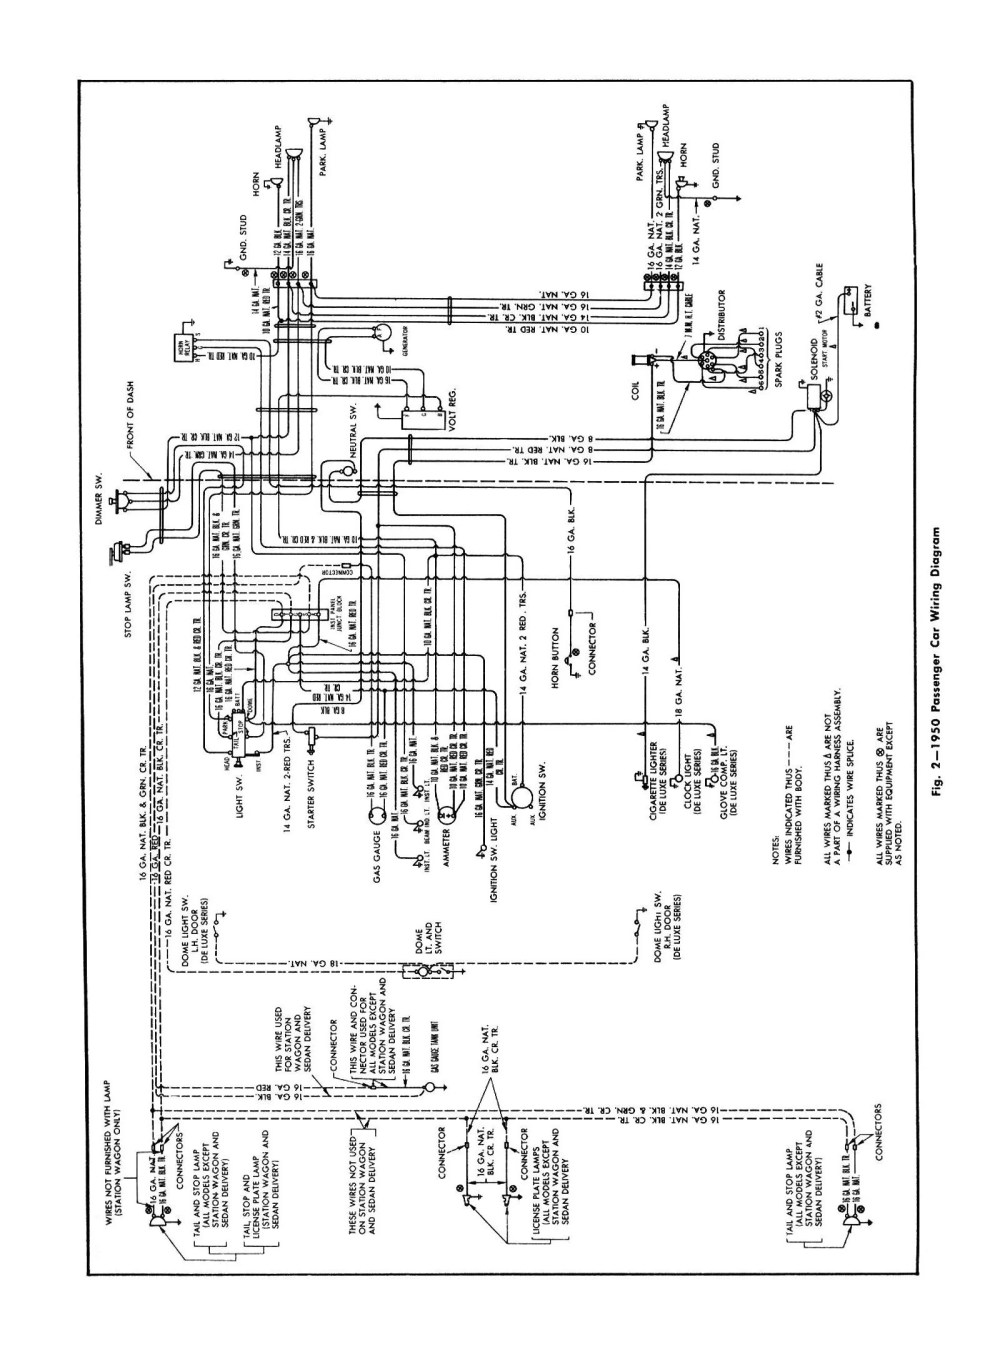 medium resolution of 1952 plymouth wiring harness electrical wiring diagram wiring diagram 1953 plymouth